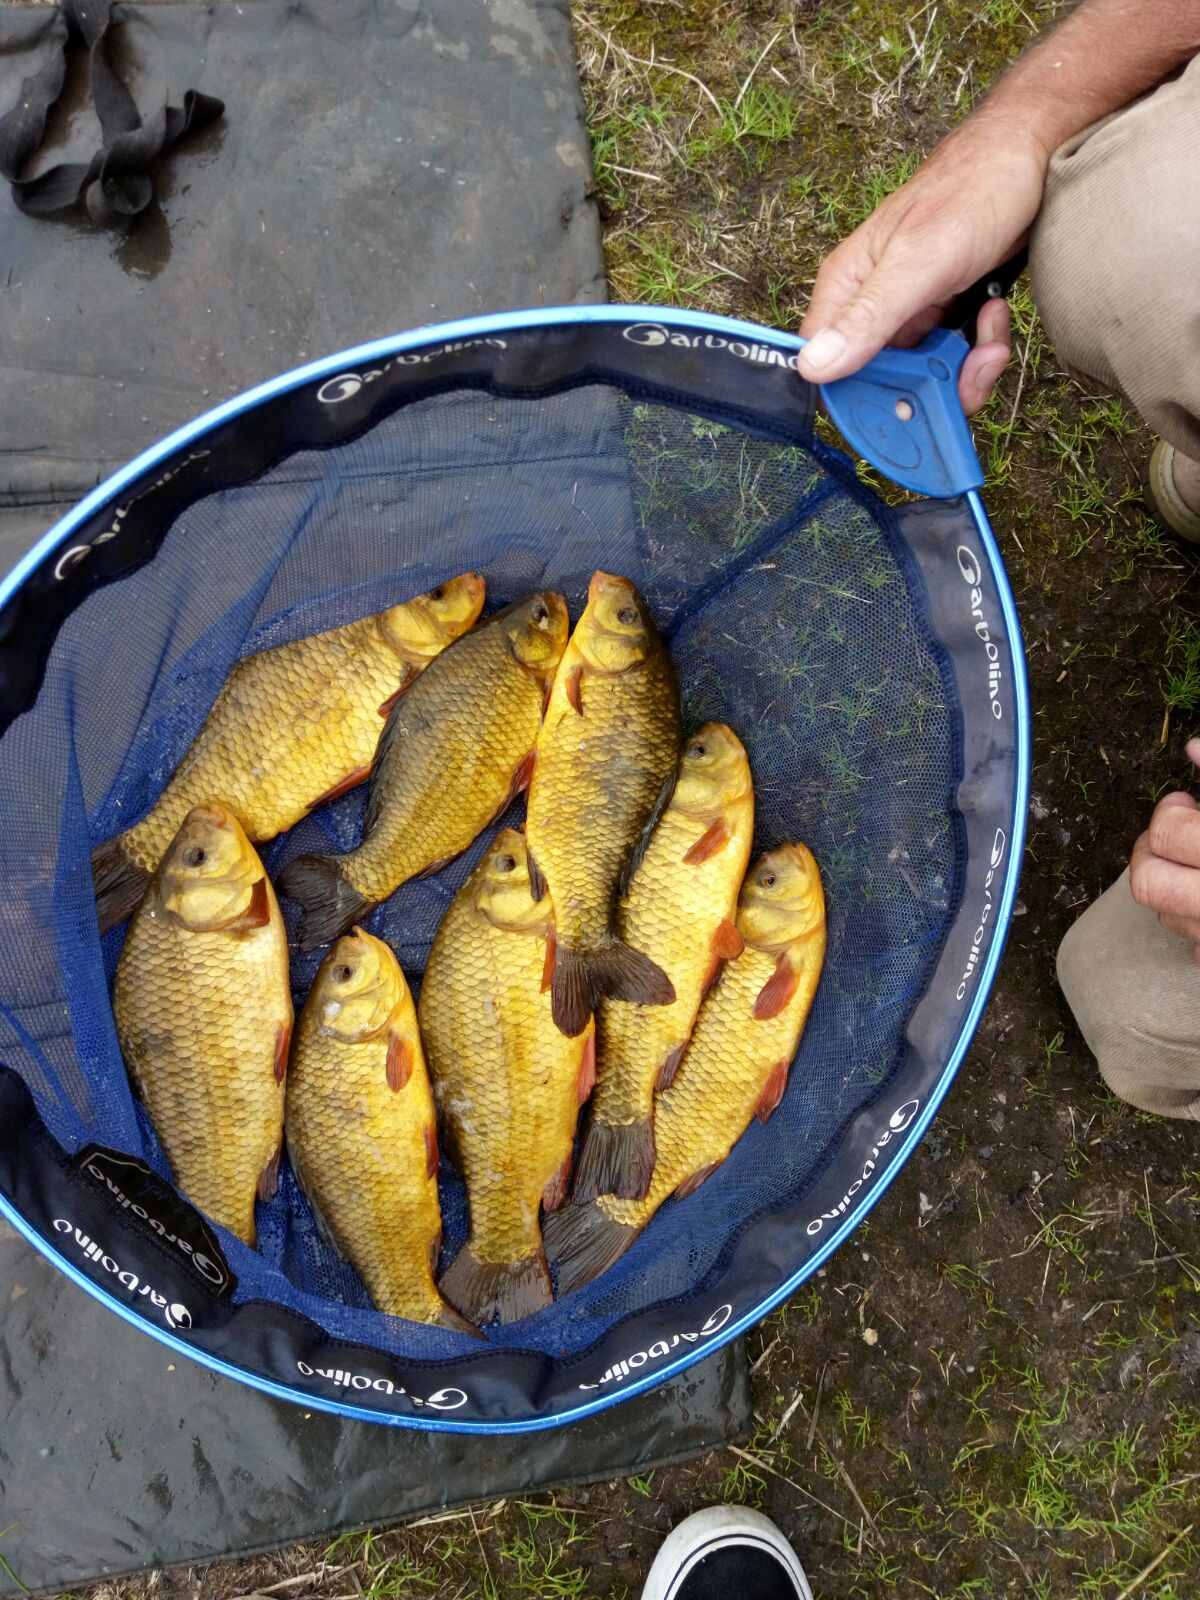 Net of crucian carp caught by Steve Weatherer  30/08/17